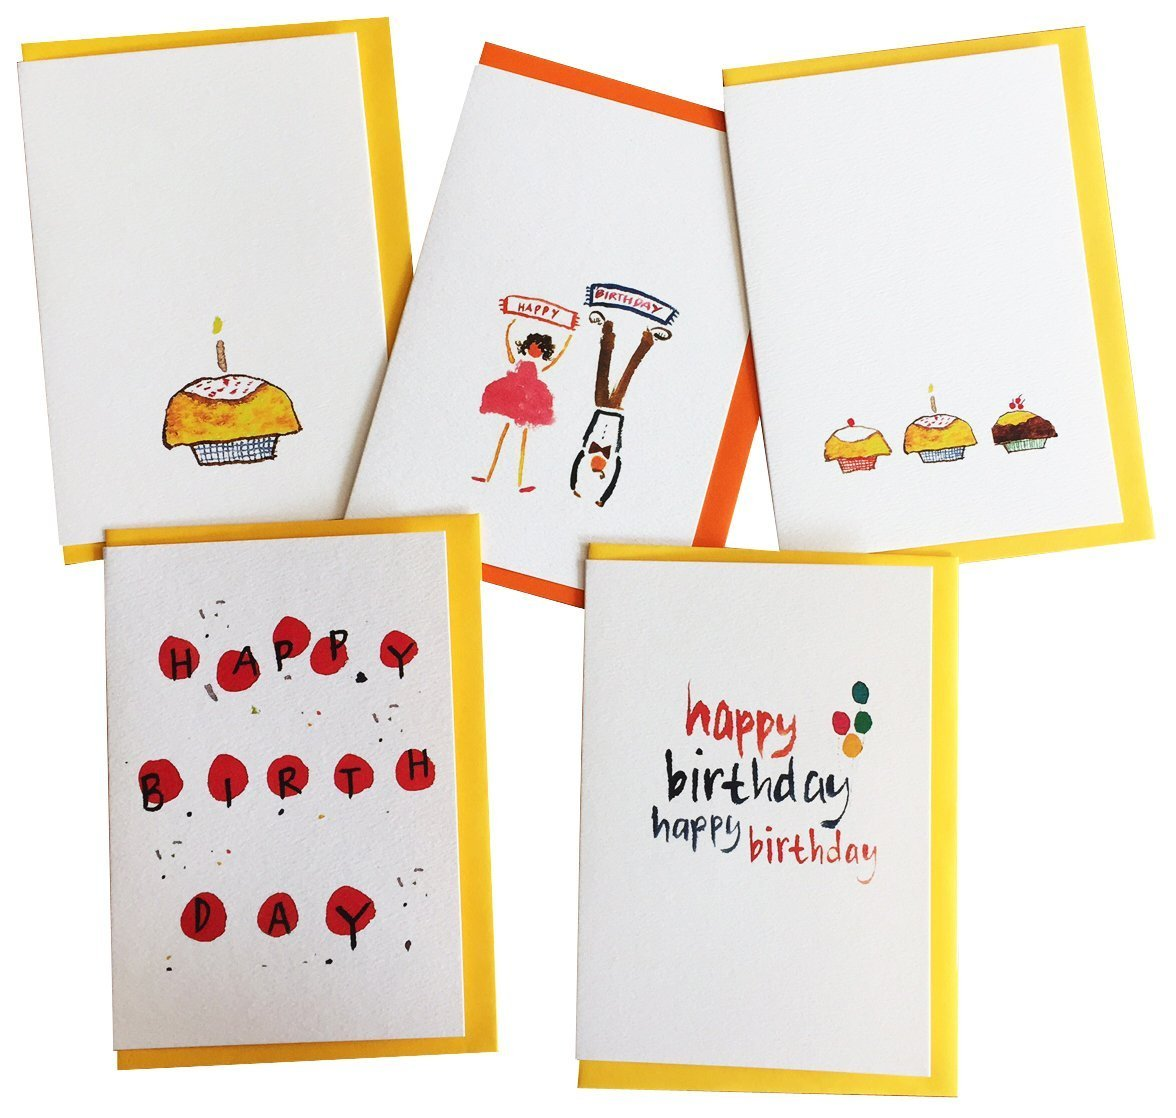 Buy January Sale Birthday Cards Happy Birthday Greeting Cards From